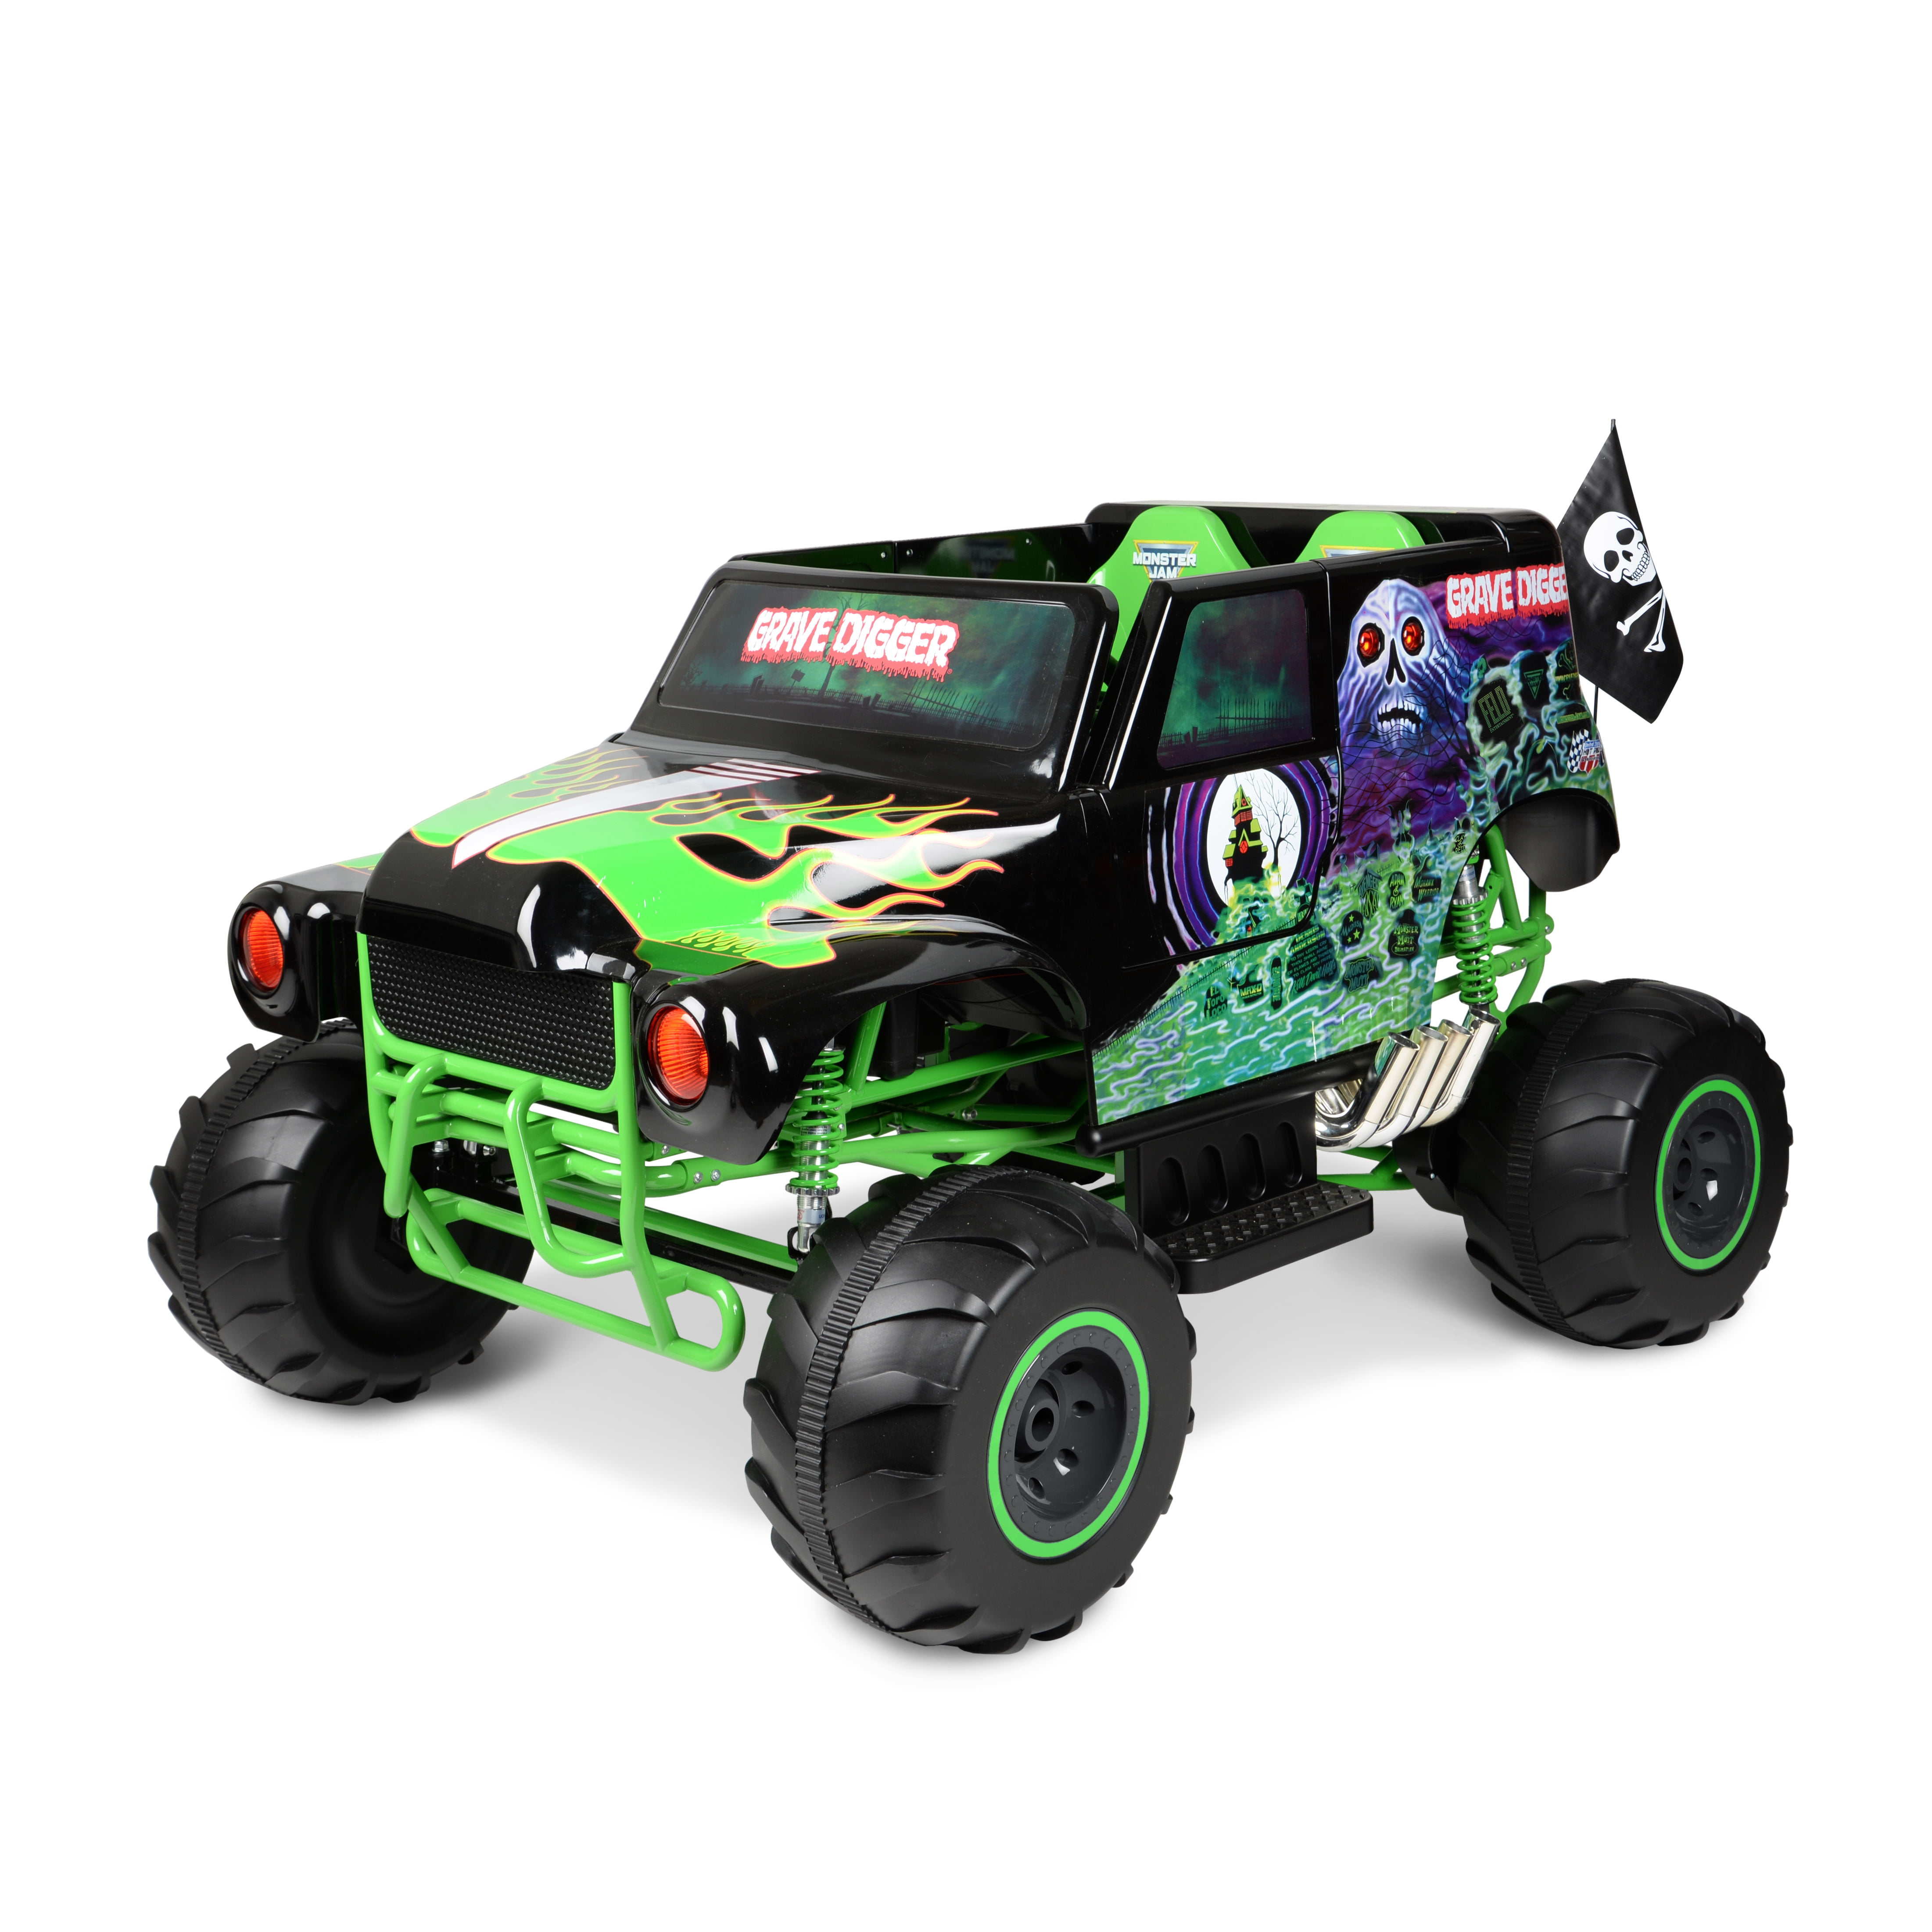 729e52959a9 Monster Jam Grave Digger 24-Volt Battery Powered Ride-On - Walmart.com